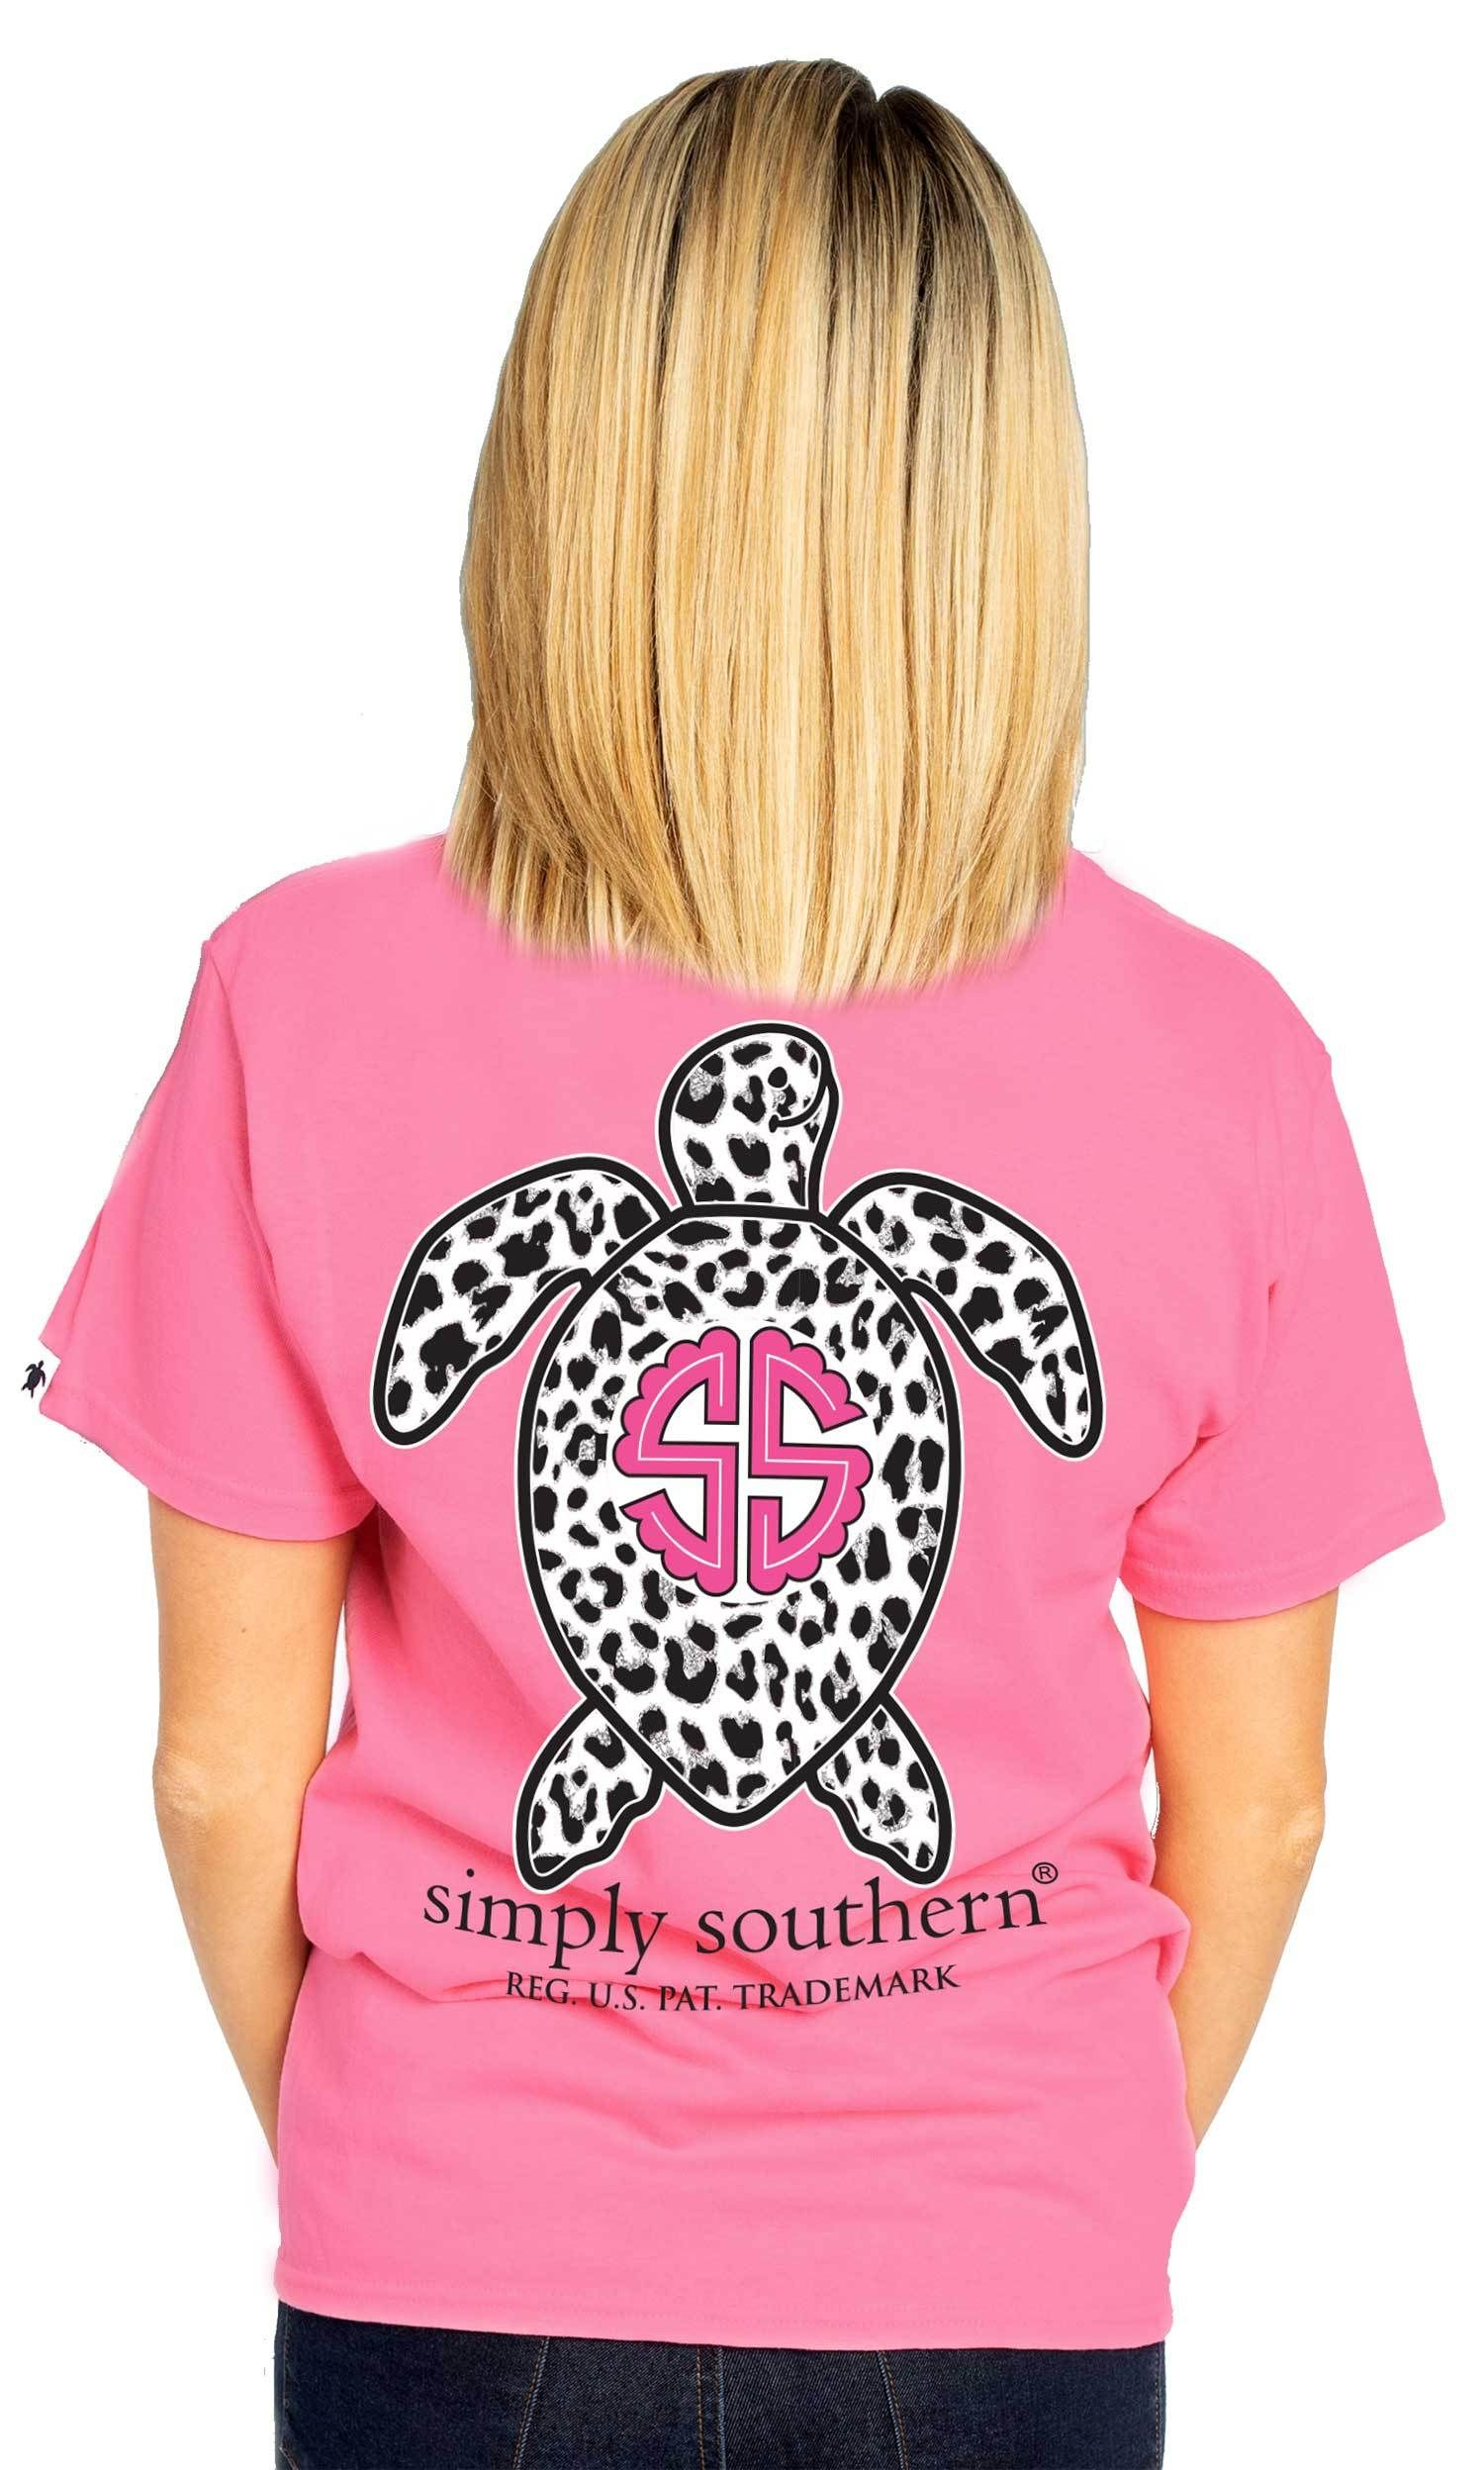 YOUTH Dream Tie Dye Save The Turtles Simply Southern Tee Shirt